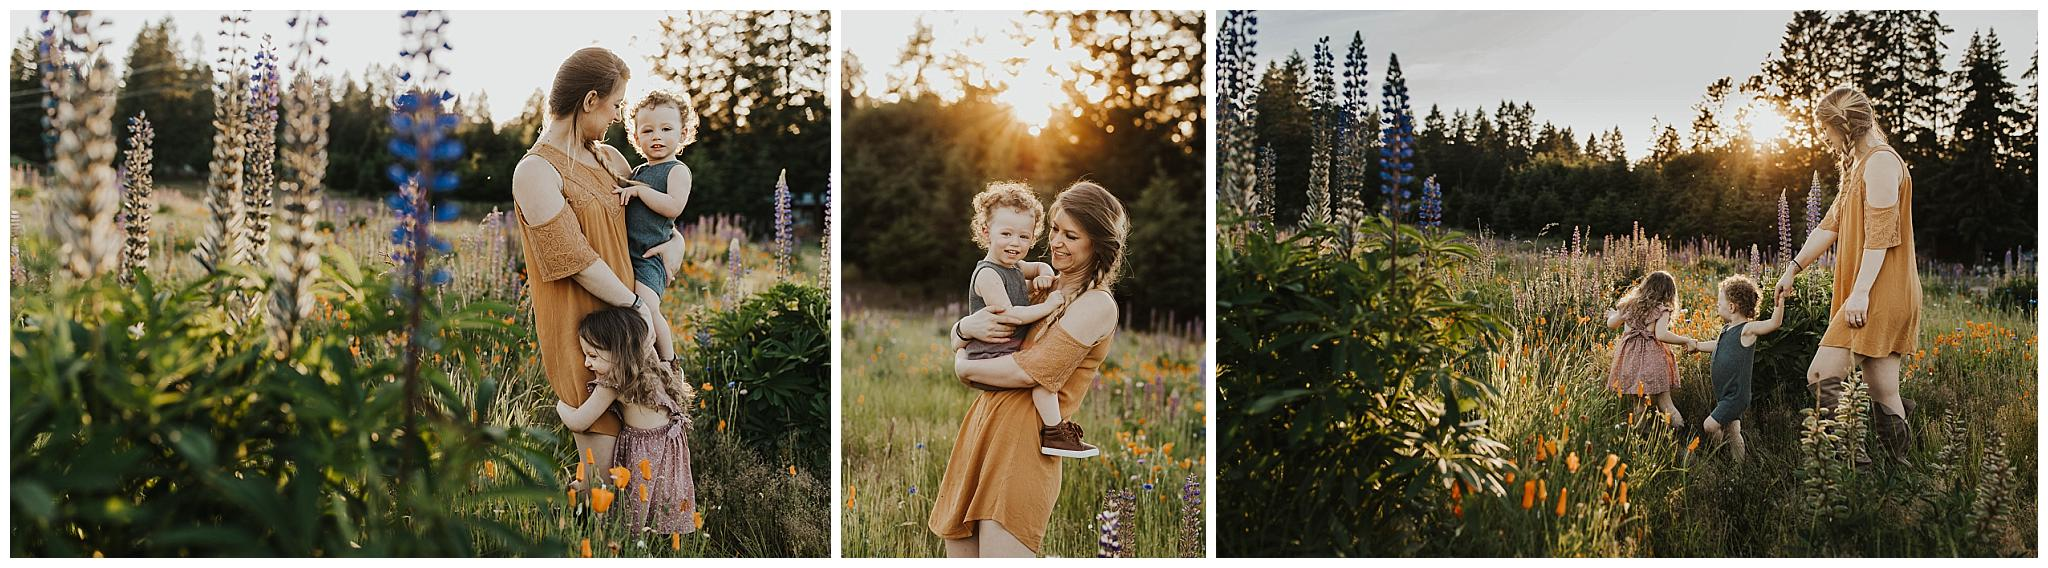 Portland Oregon mommy and me session in a field of wildflowers